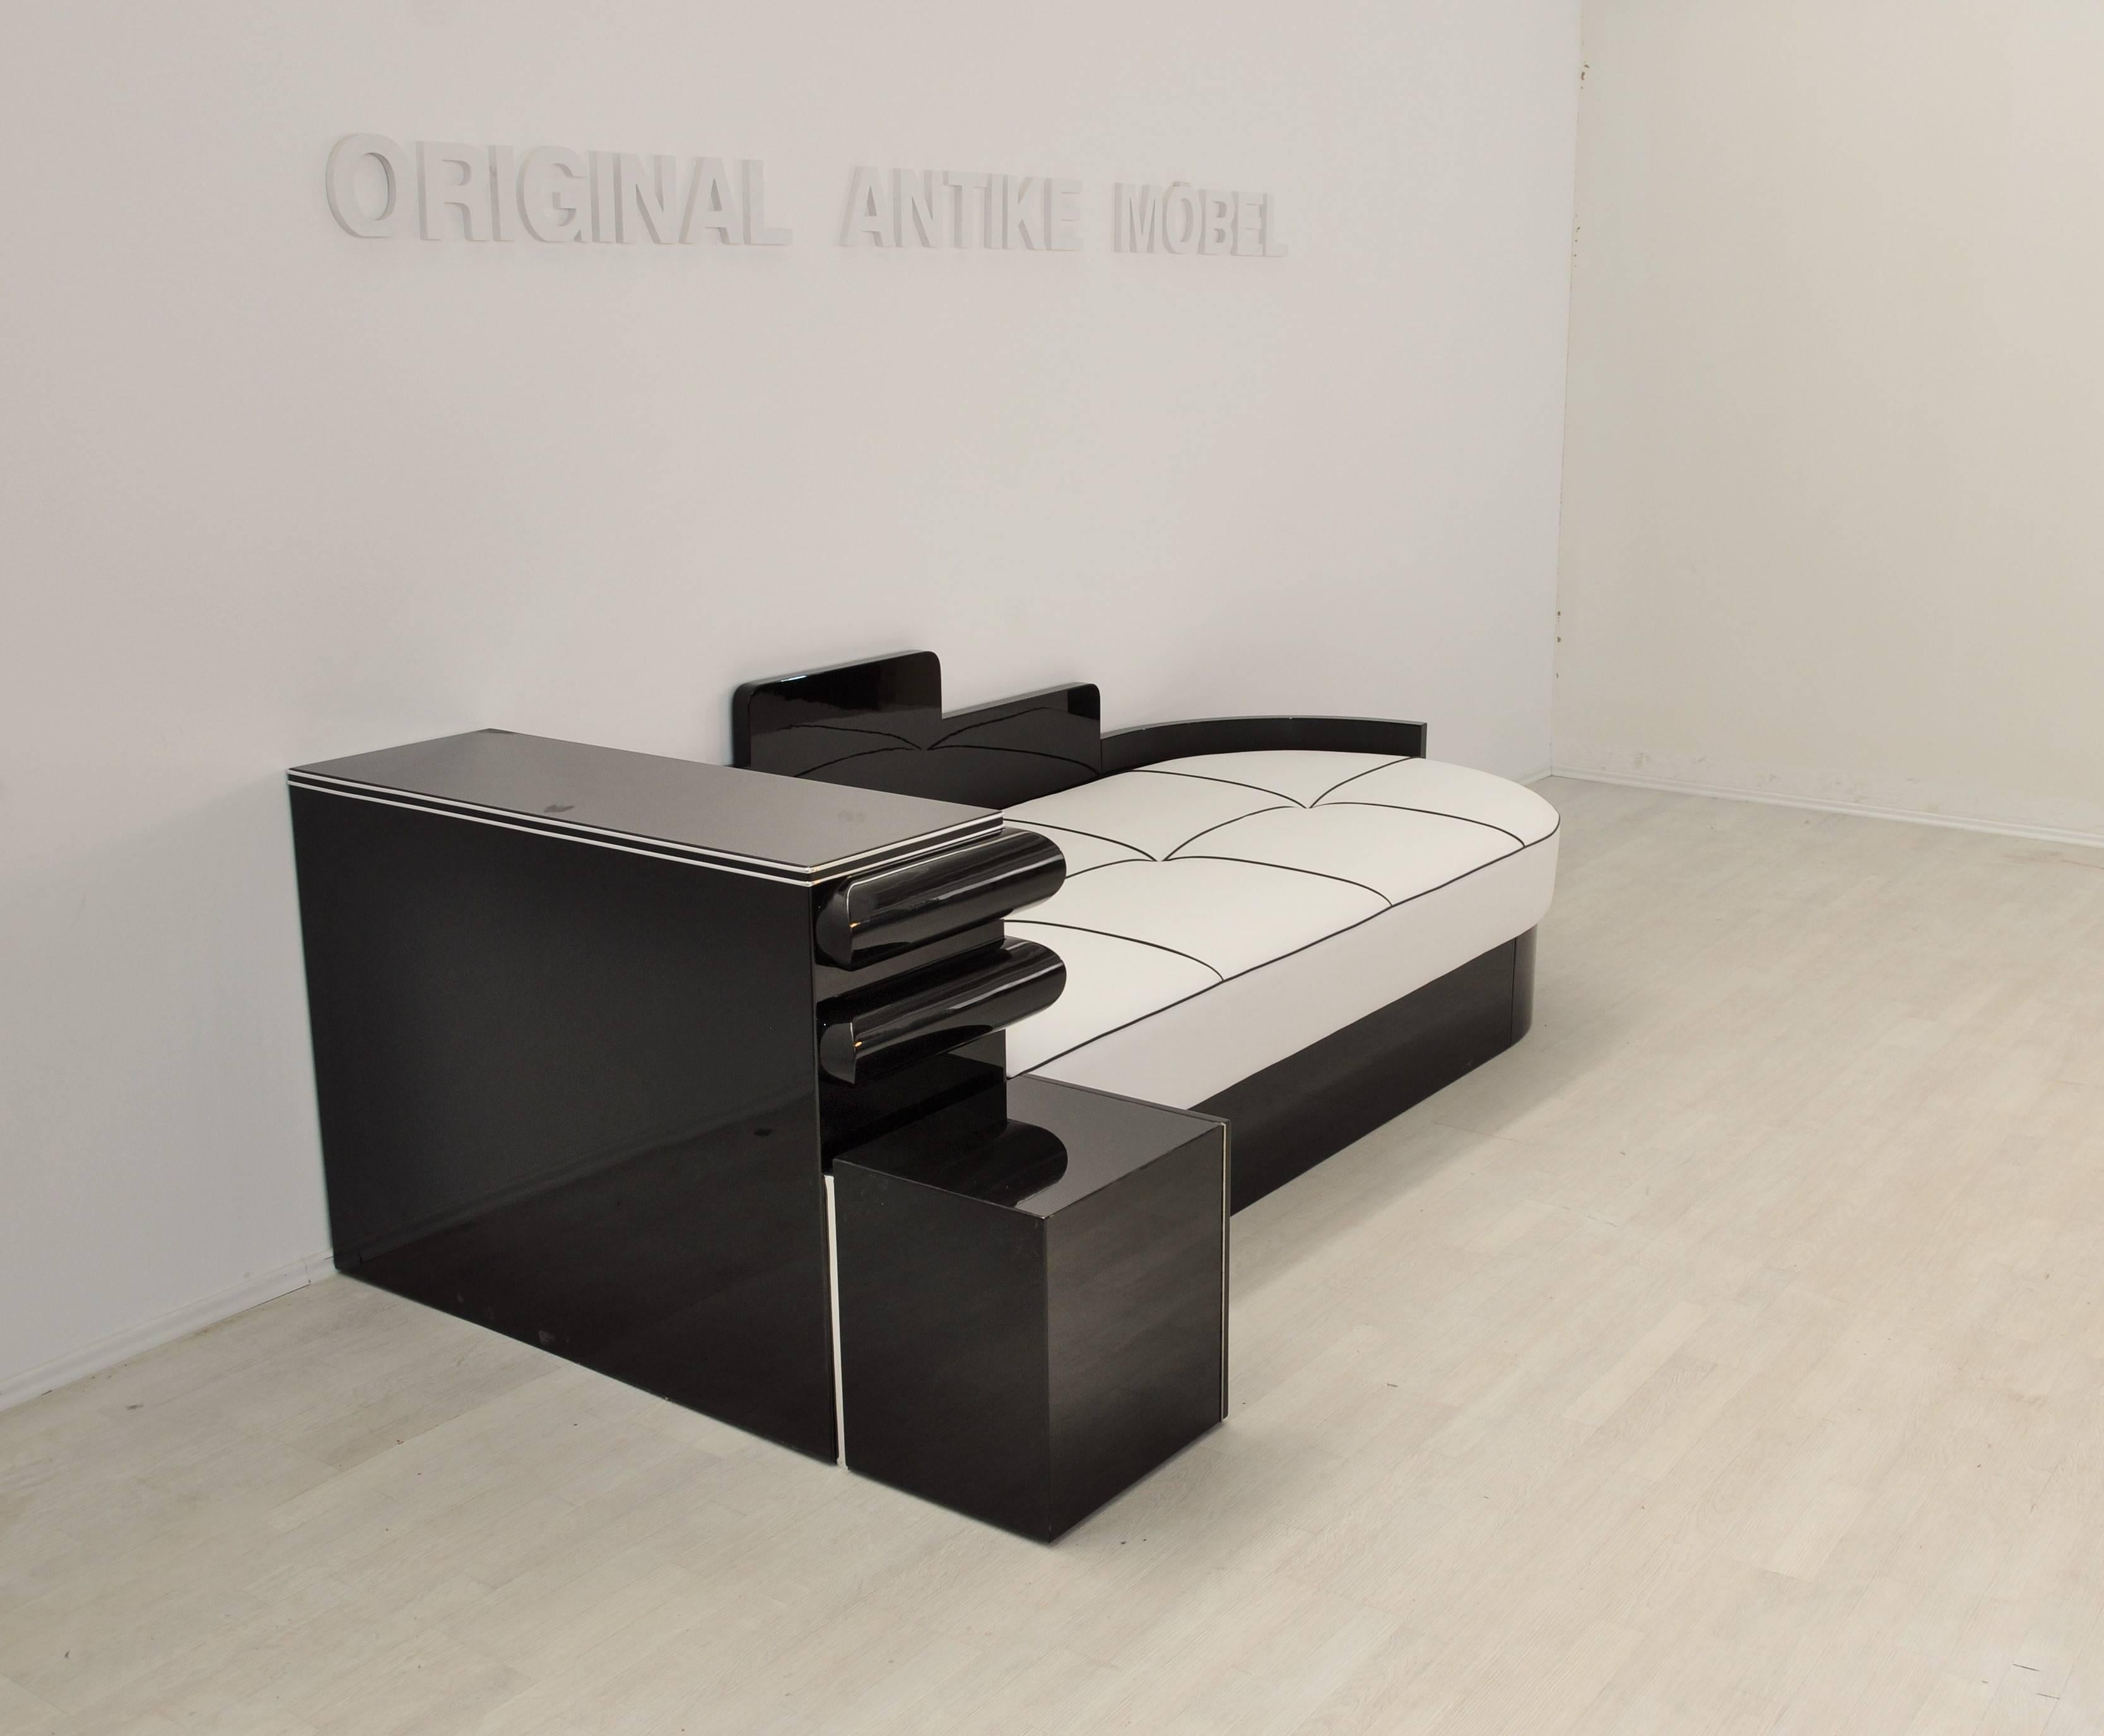 Antike Sofas Contemporary Highgloss Black Art Deco Daybed From France With A White Leather Mattress